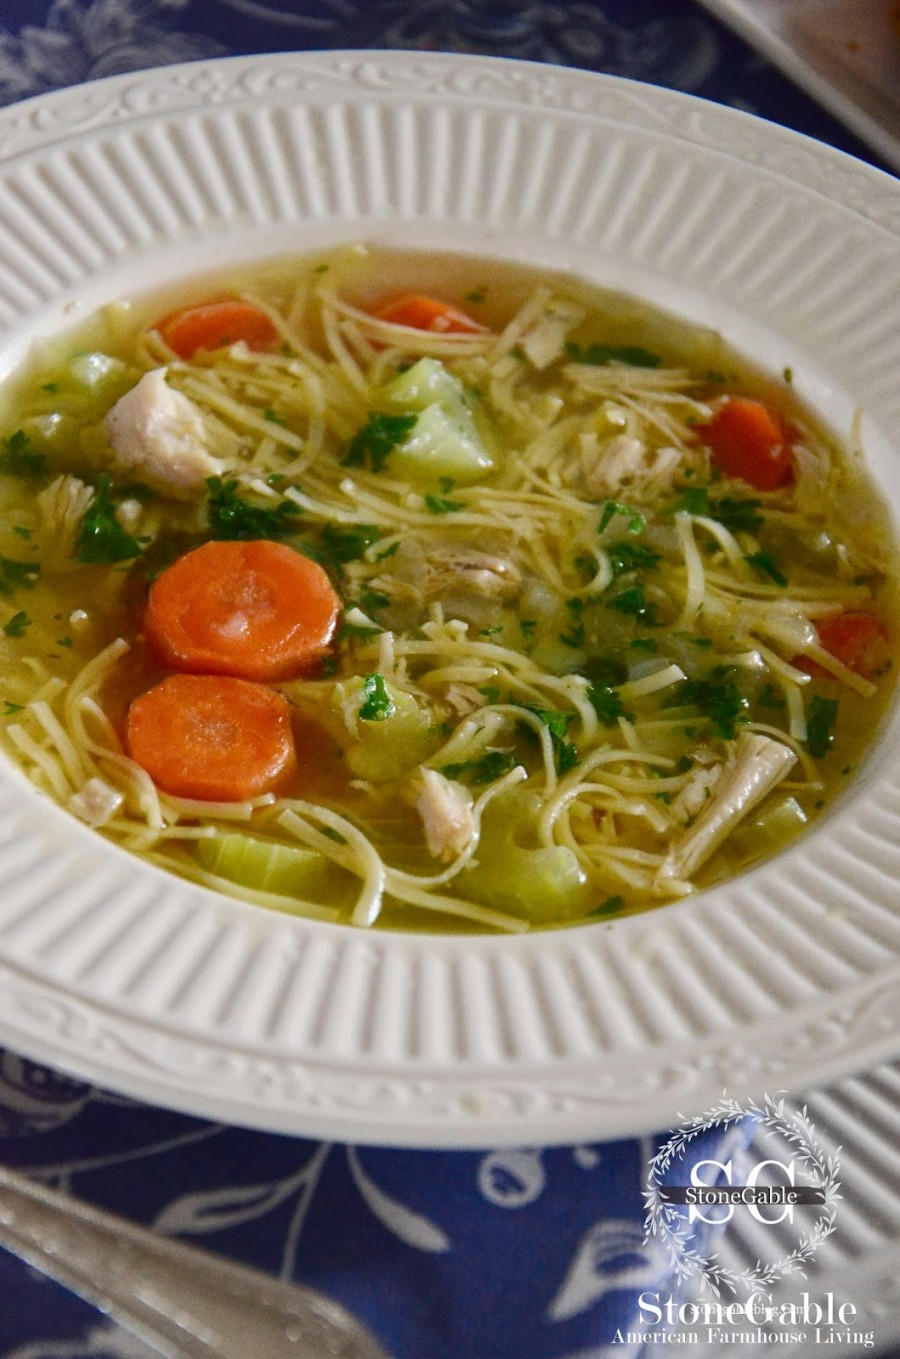 ... soup. When refrigerating, keep soup and noodles in separate containers